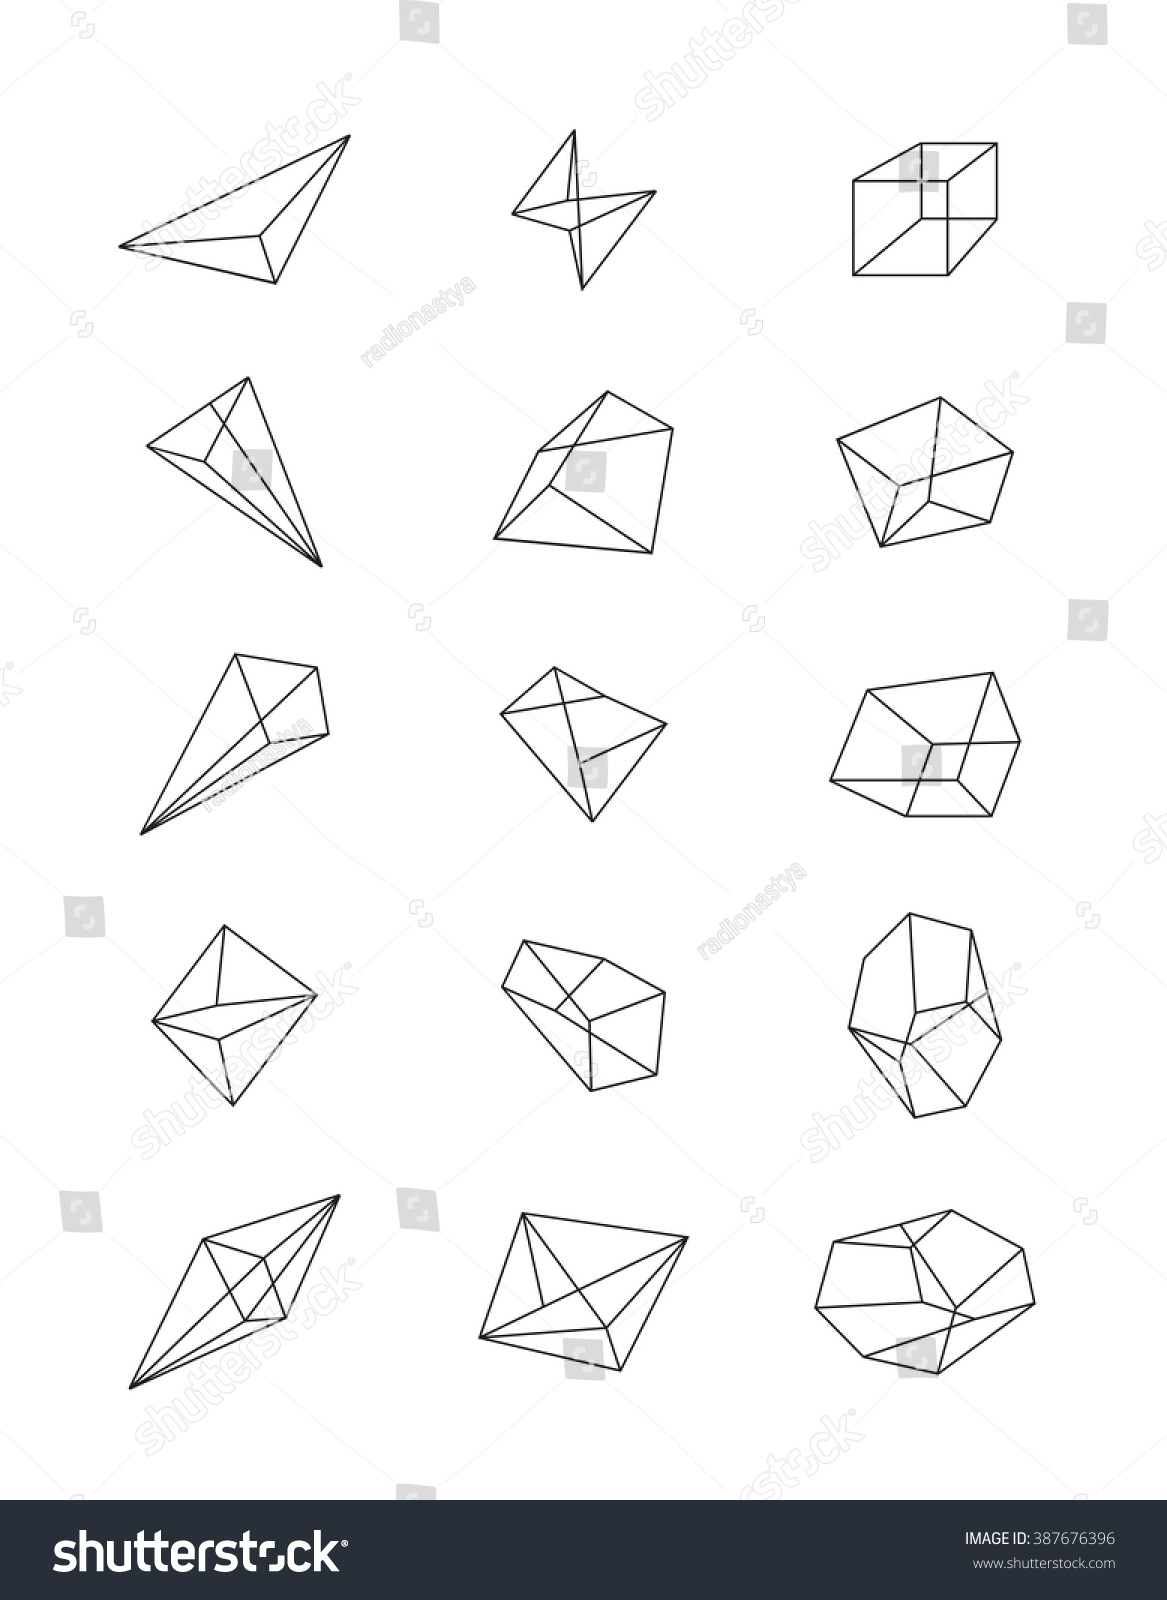 Simple Geometric Line Art : Royalty free set of geometric shapes in perspective